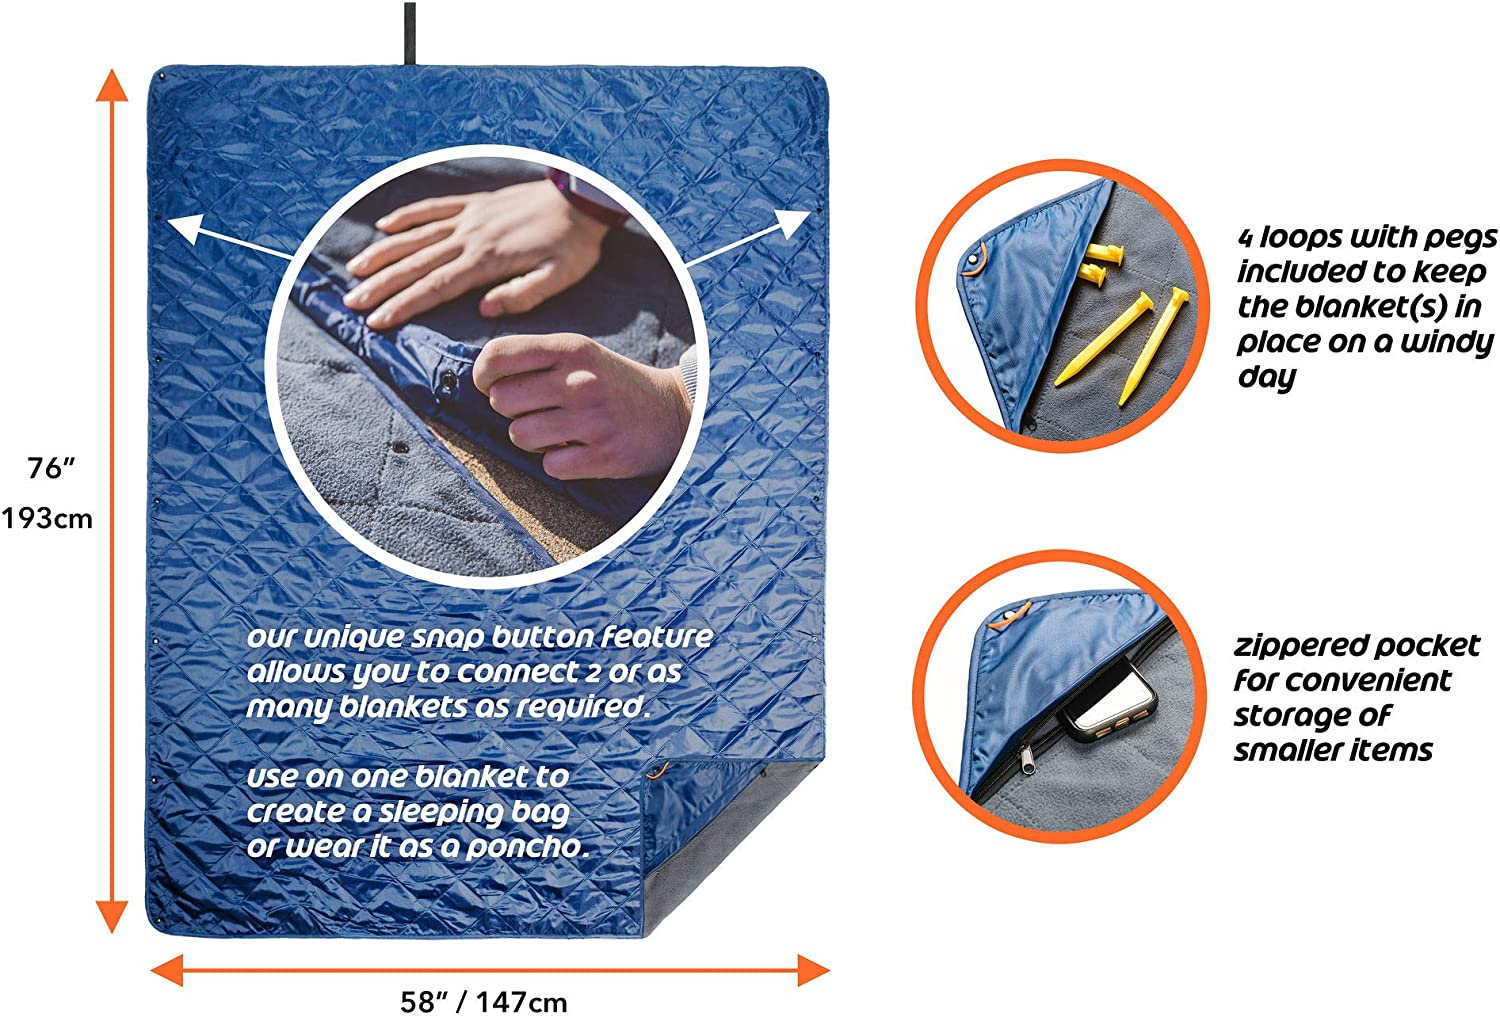 Connect Outdoors Camping Blanket Waterproof Windproof Packable Foldable Extendable Warm Quilted Fleece for Picnic, Beach, Backpacking, Travelling, Festivals, Pet - Car Seat Cover, Large 76 x 58 Inch: Kitchen & Dining